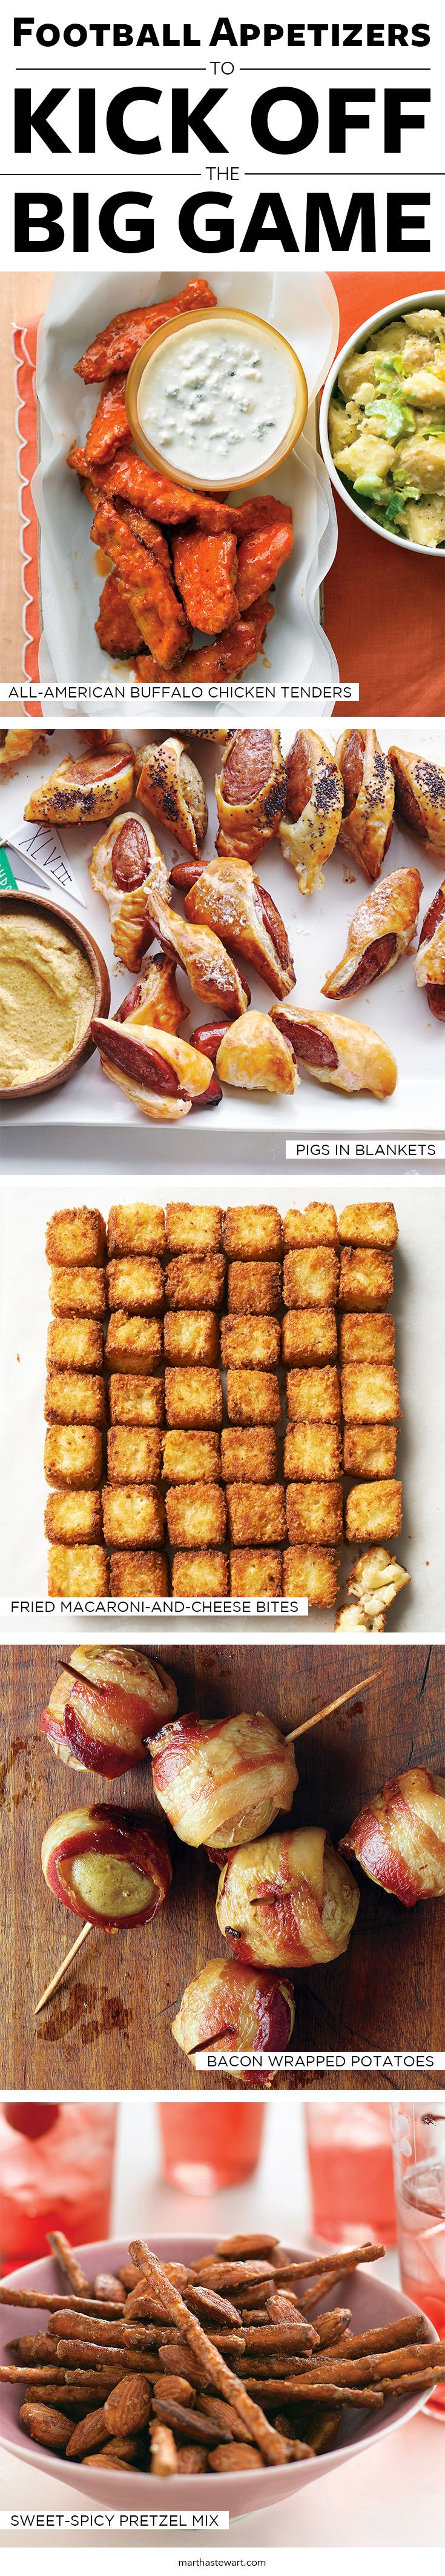 Football Appetizers to Kick Off the Big Game | Martha Stewart Living